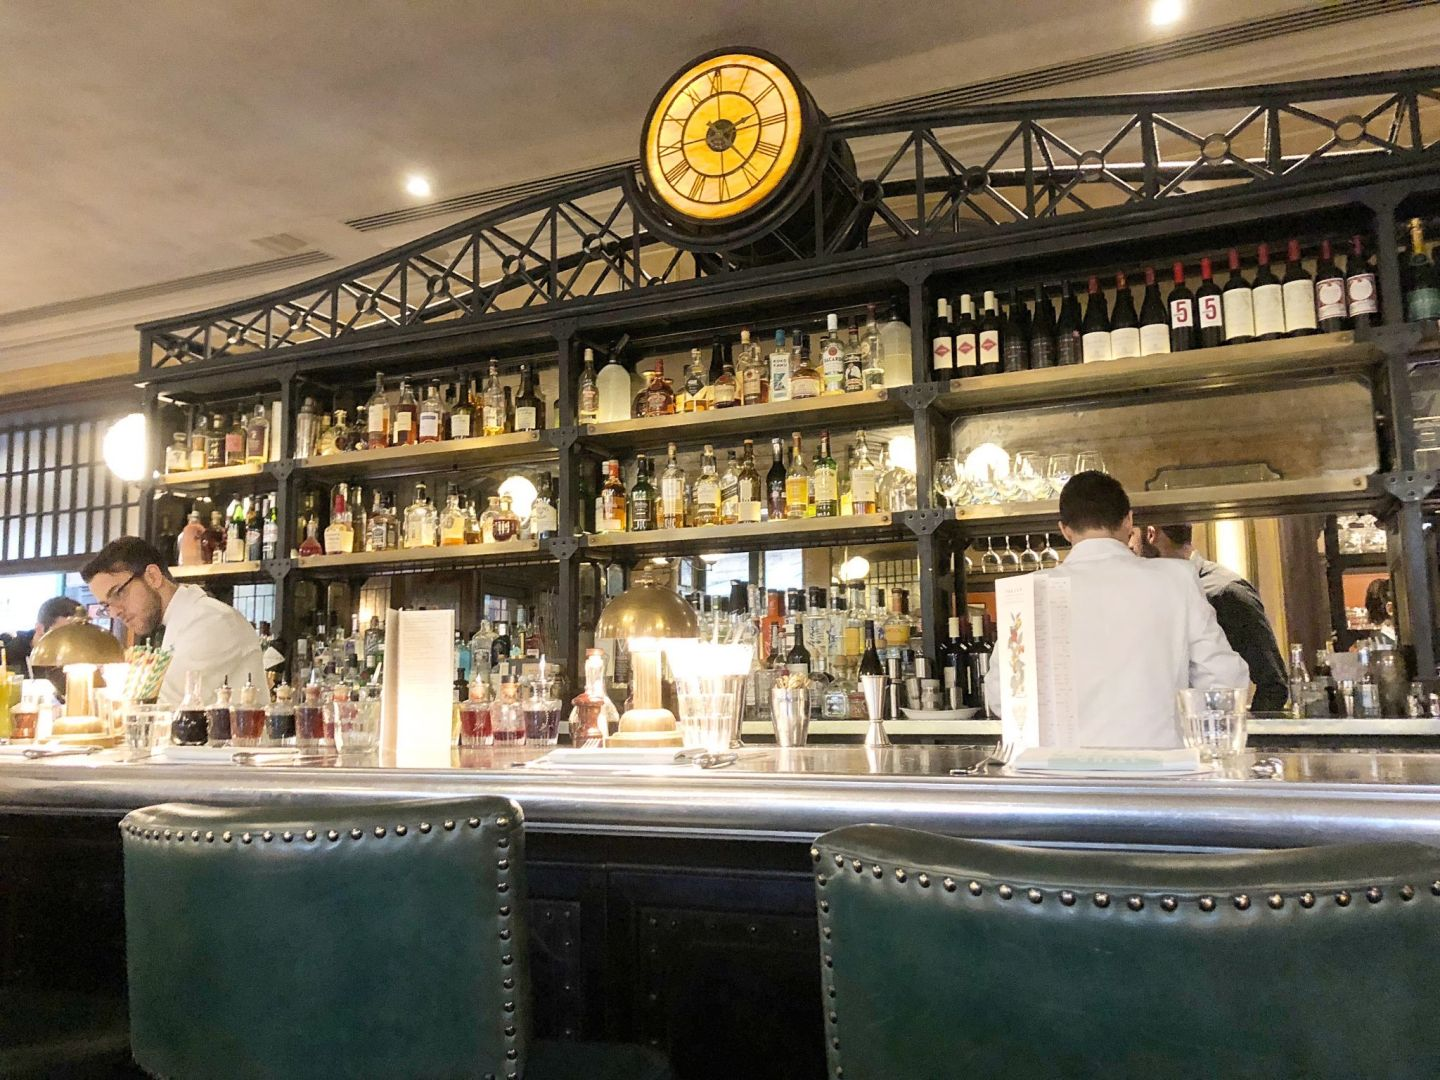 Review: The Best Dessert In London   THE IVY MARKET GRILL   LONDON   FREYA WILCOX